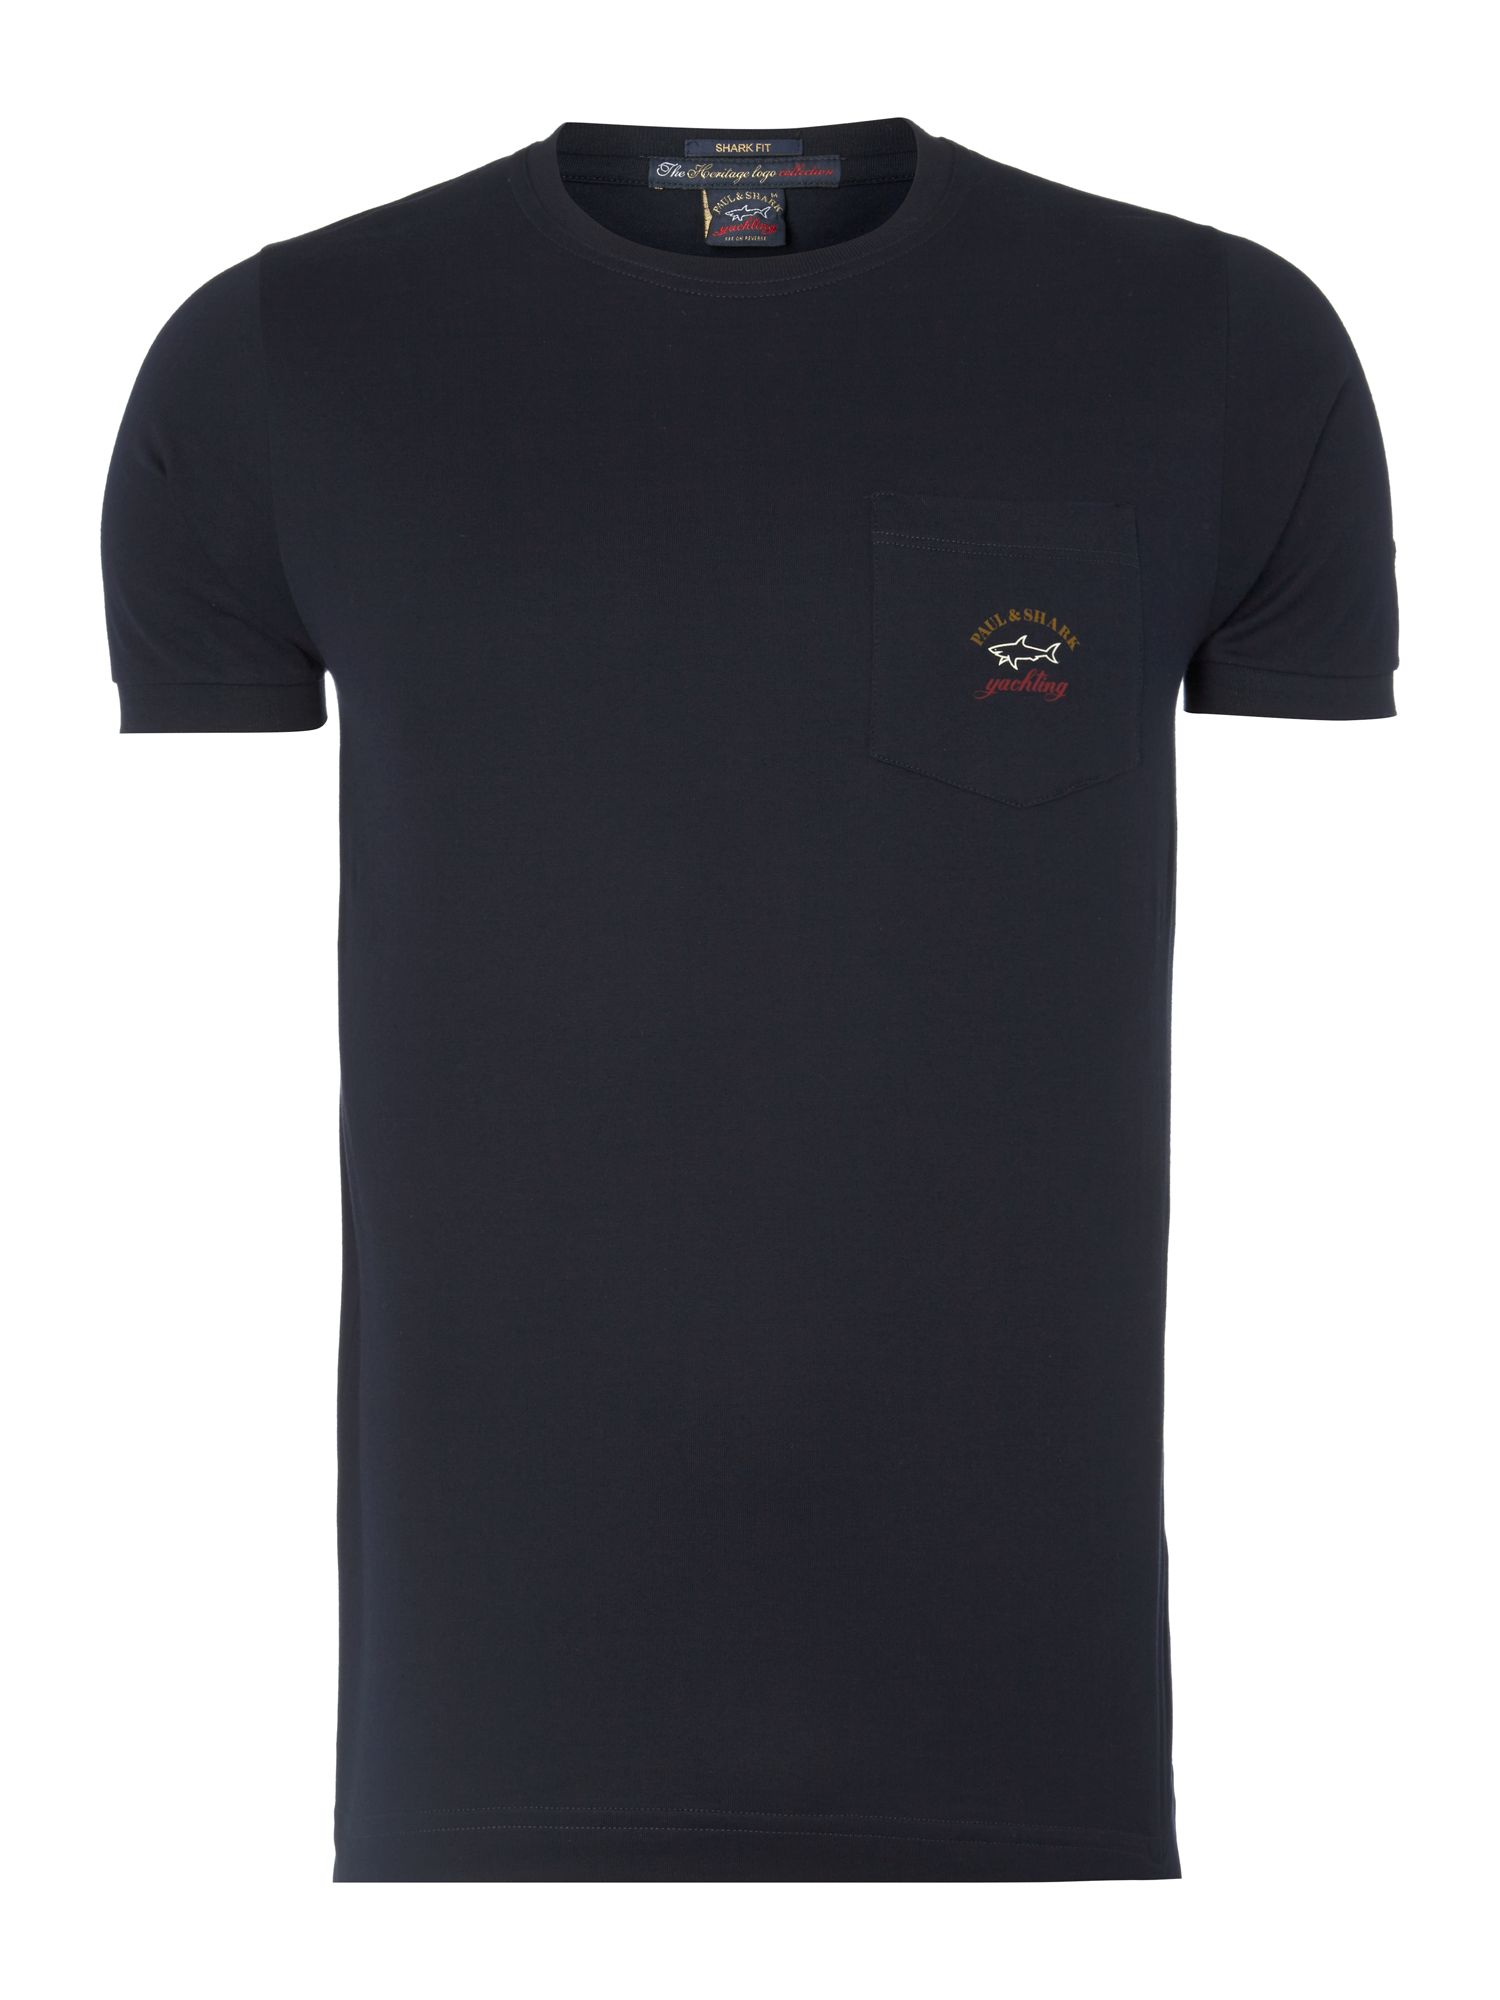 Crew neck slim fit pocket Tshirt